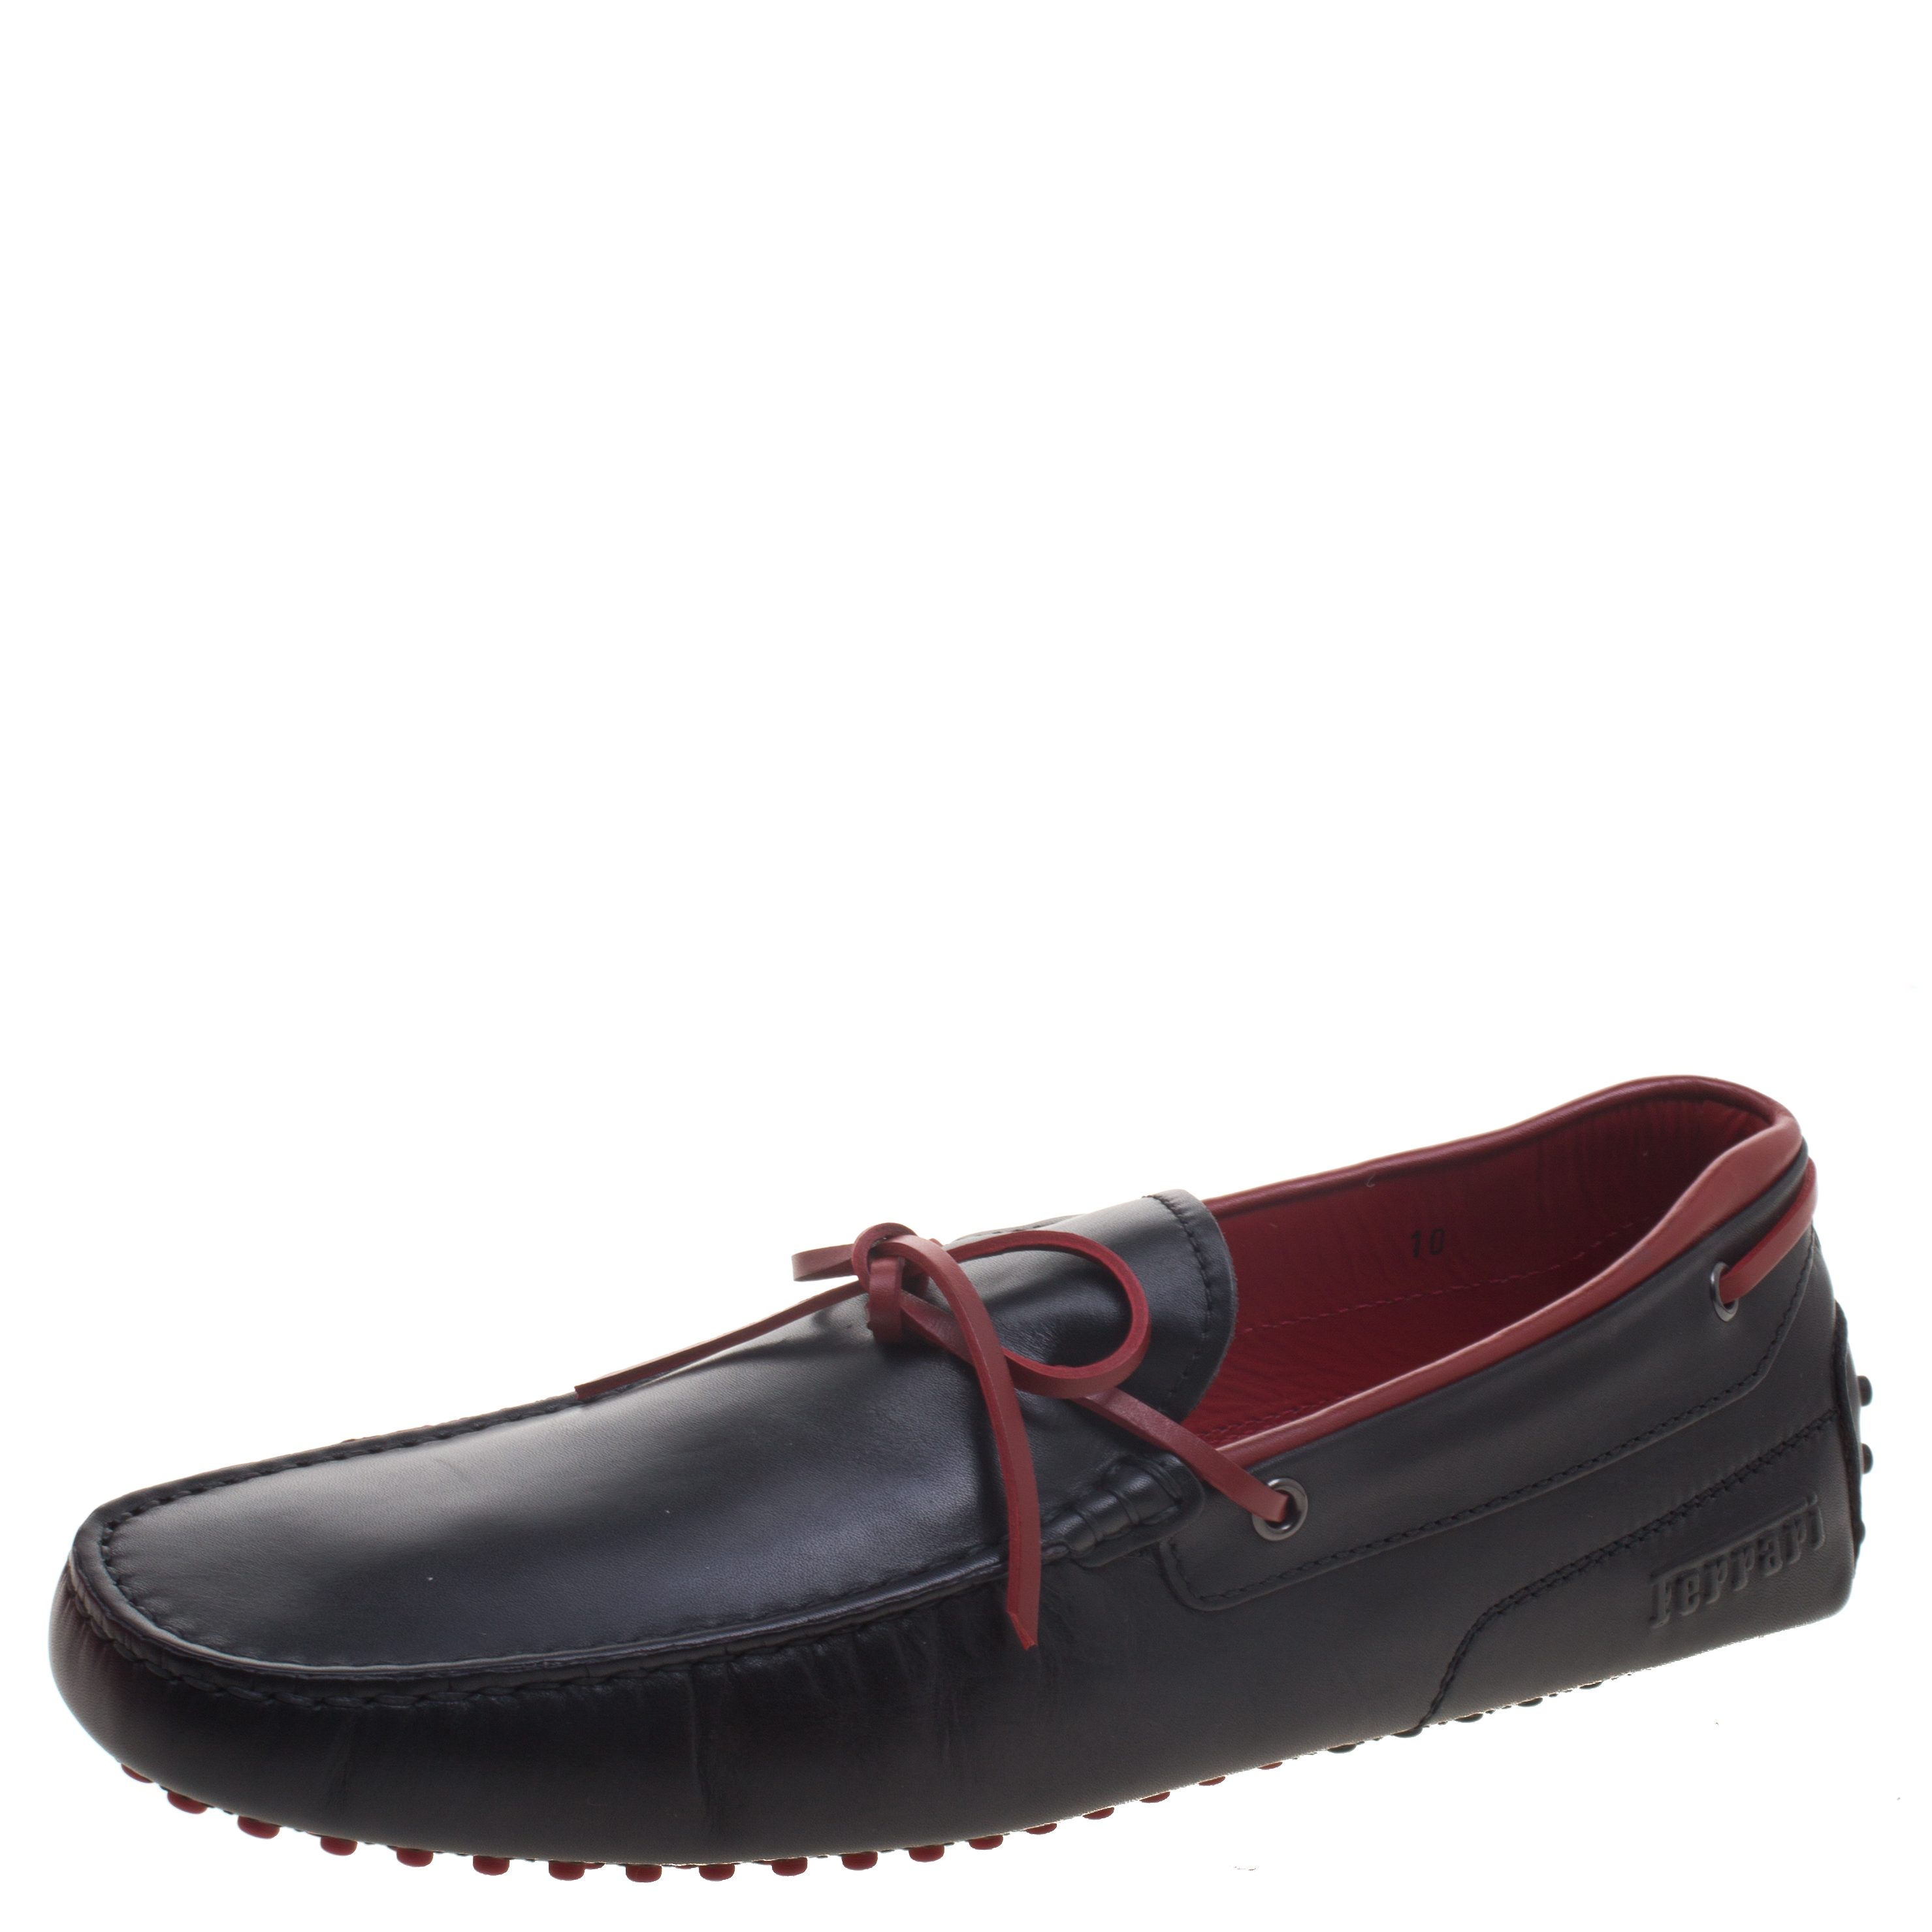 57ea2e8effd ... Tod s For Ferrari Black and Red Leather Bow Loafers Size 44.5.  nextprev. prevnext